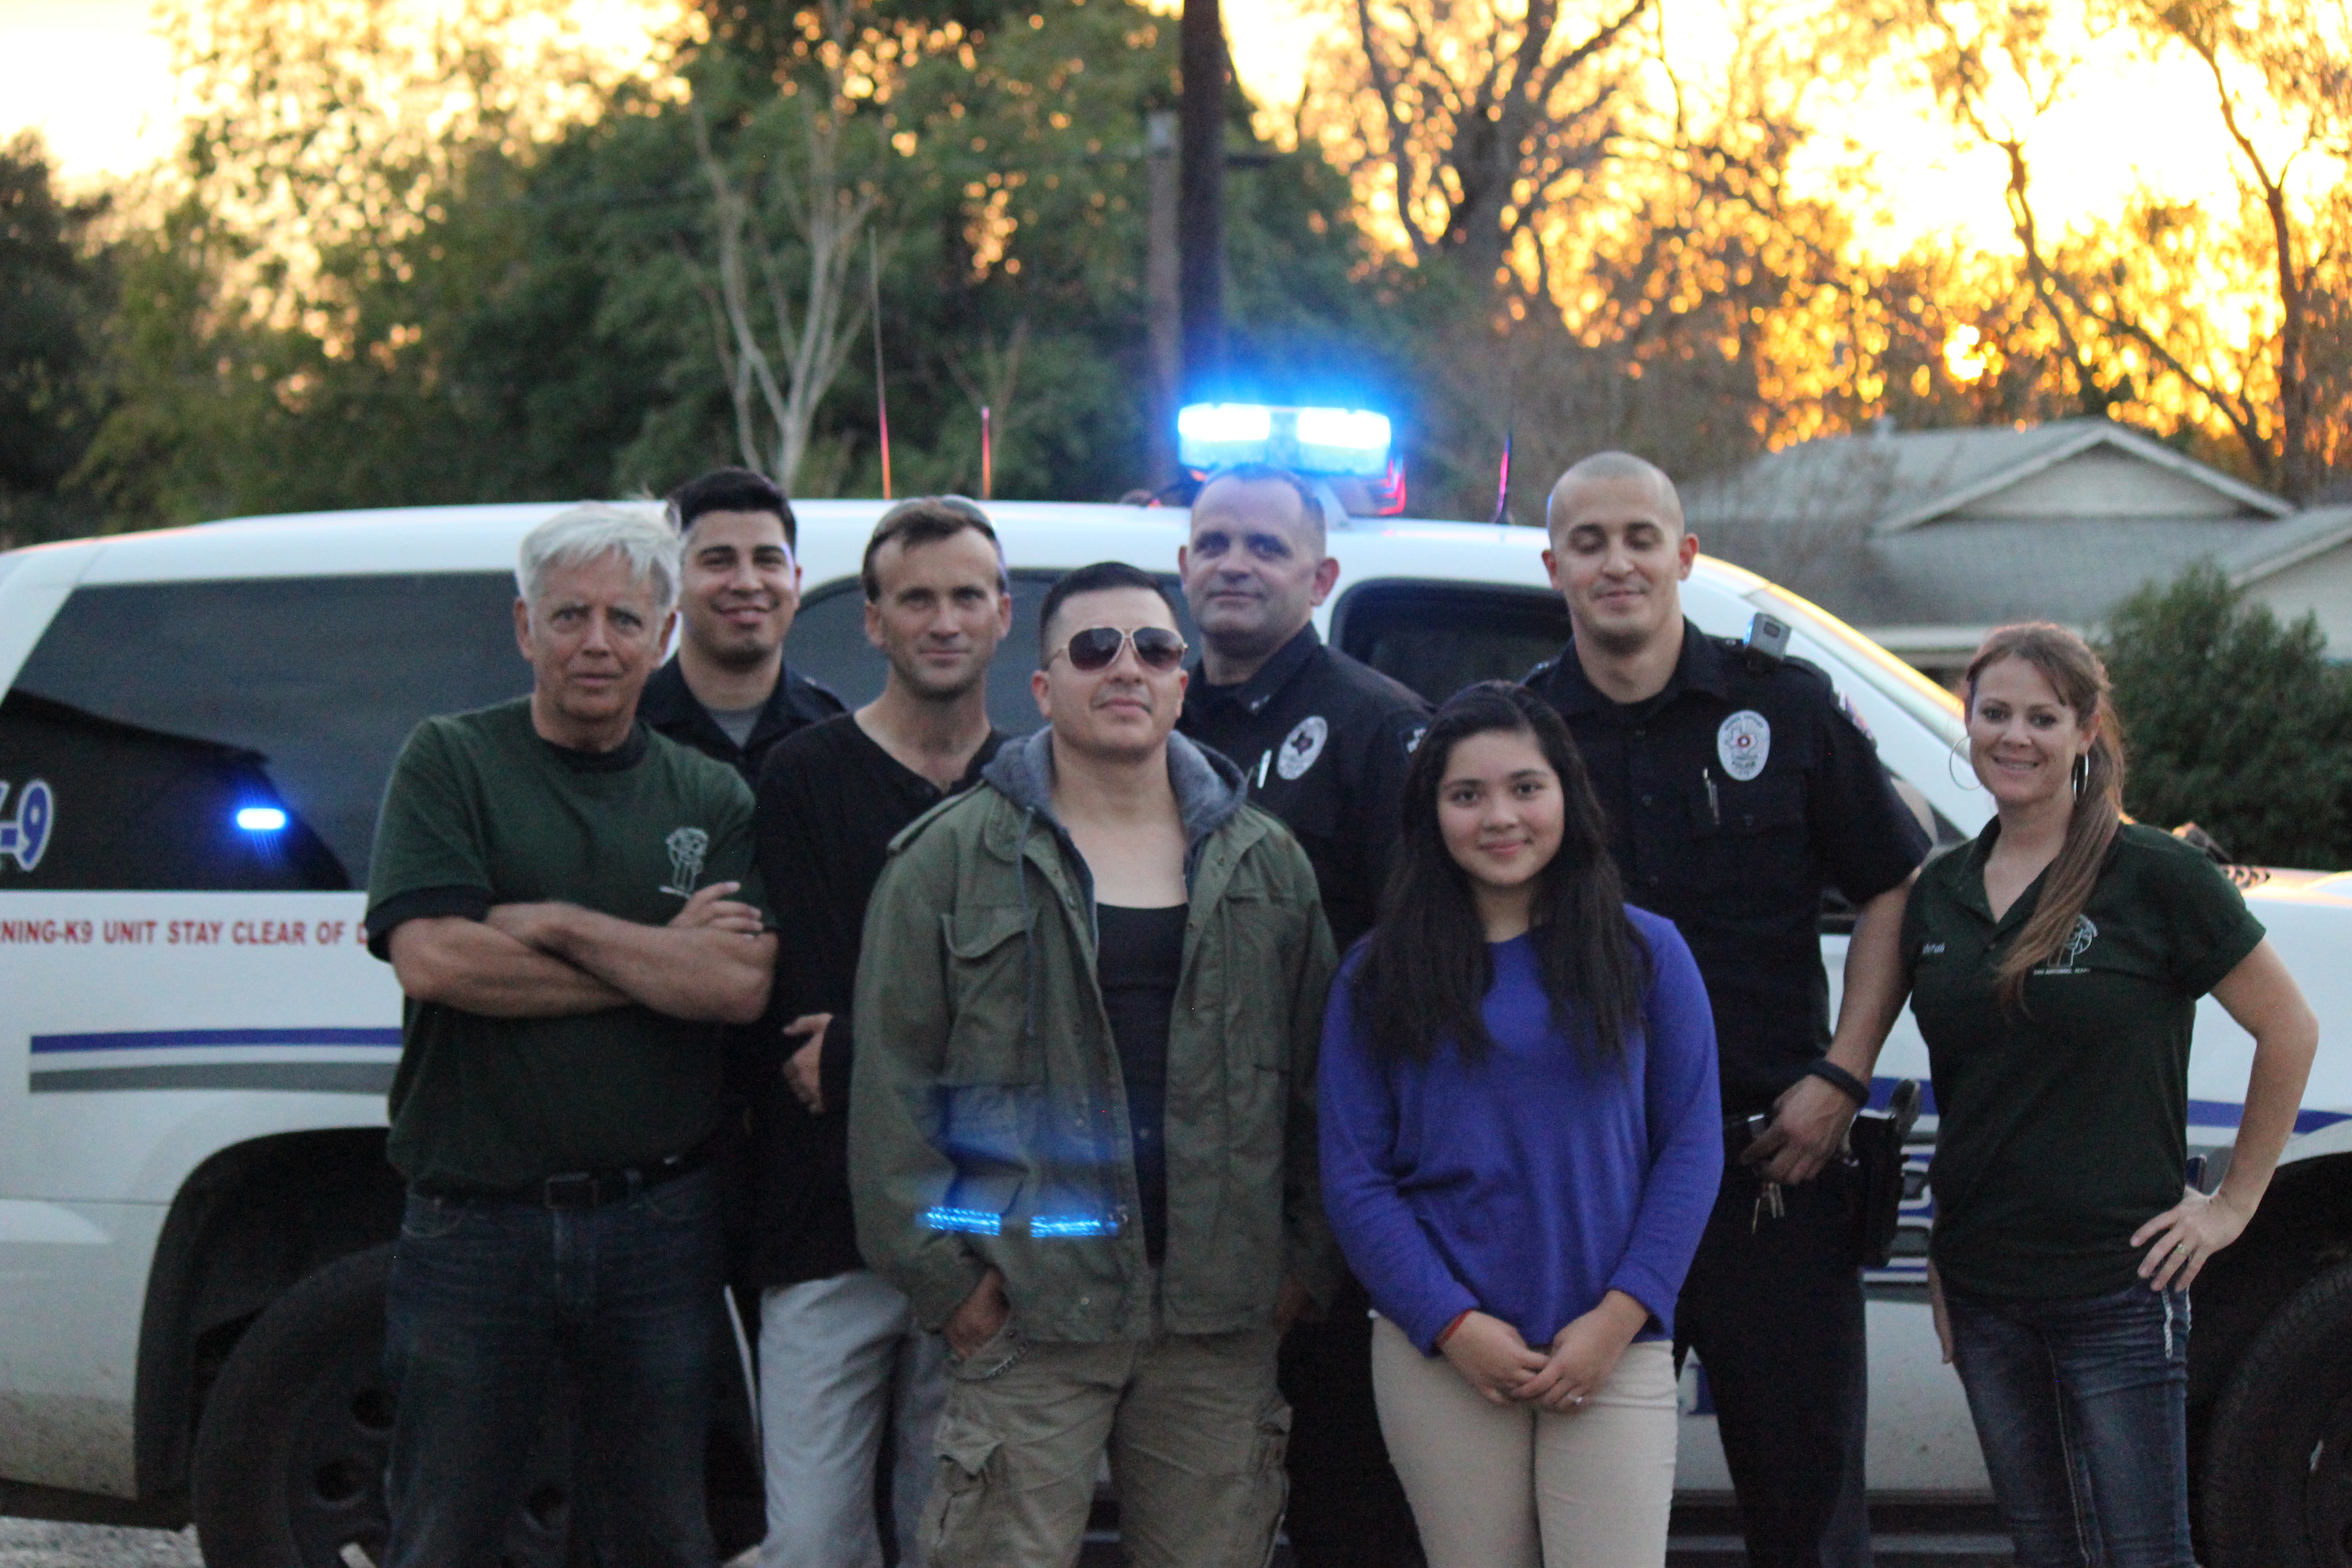 Ken with Officers and Crew